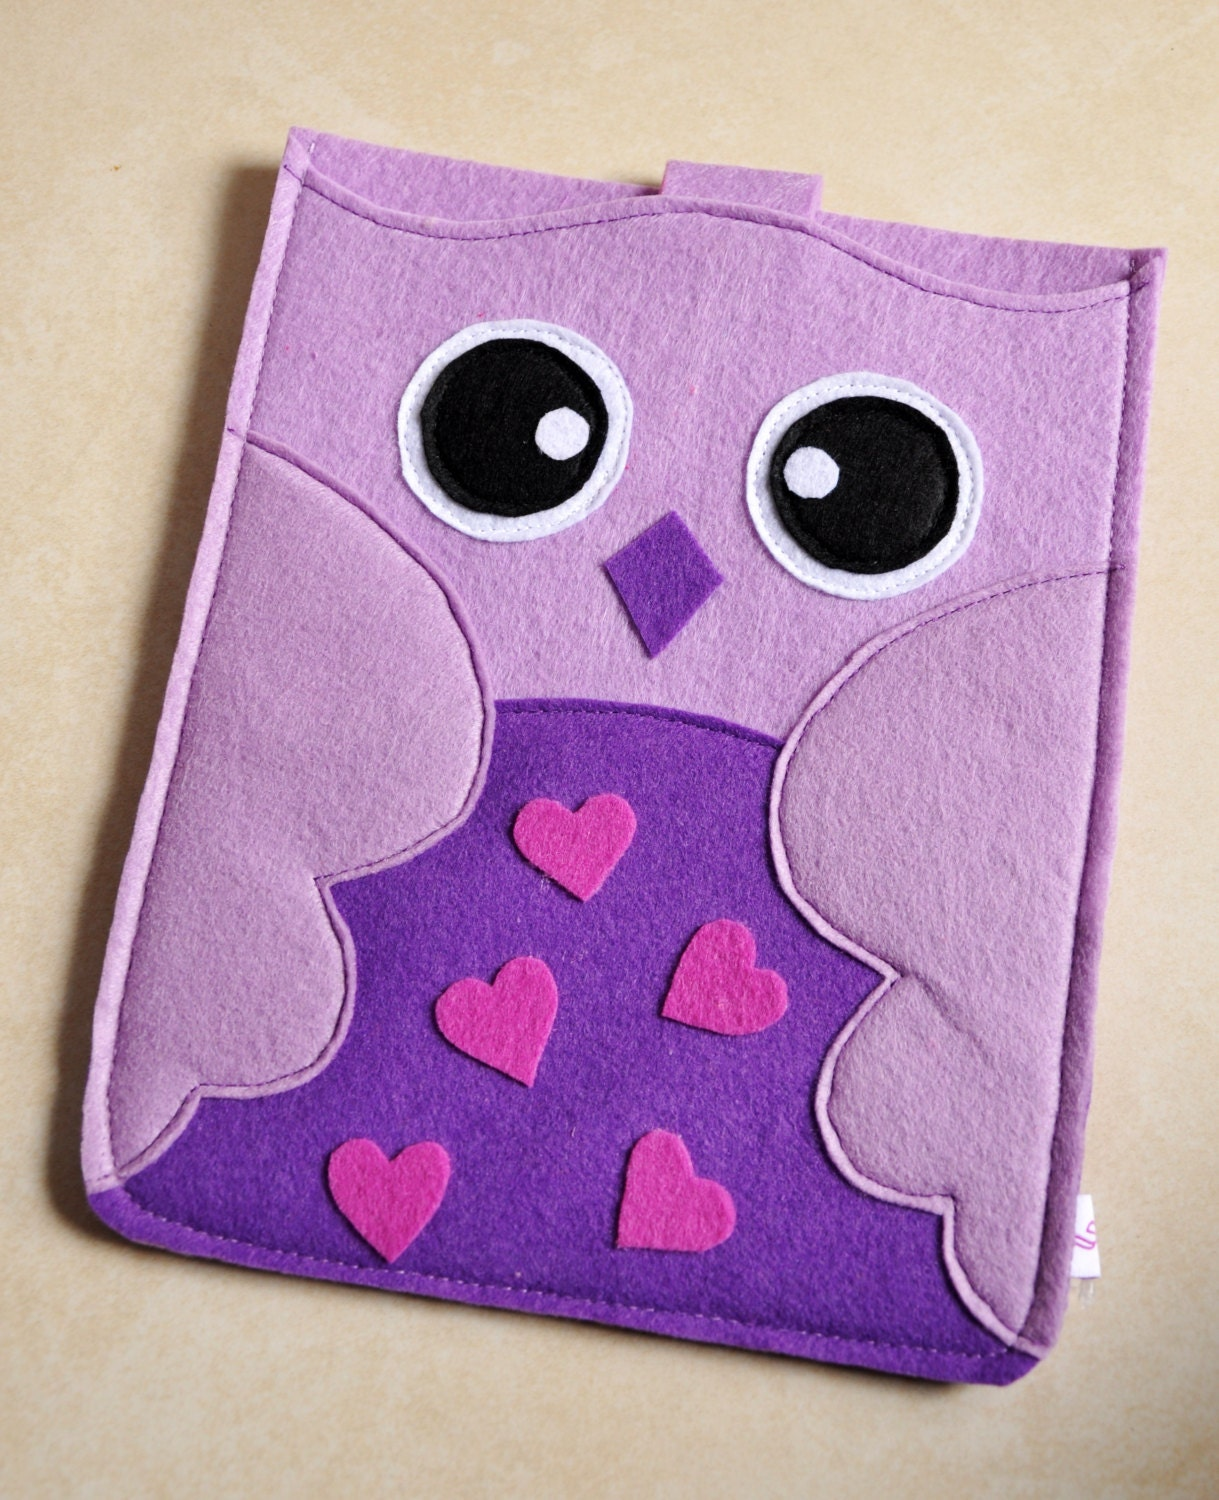 Sale Purple Owl -100%Felt iPad case/ iPad purse/ iPad bag/ iPad cover/ iPad Sleeve/handmade ipad case/iPad mini case - SheetaDesign